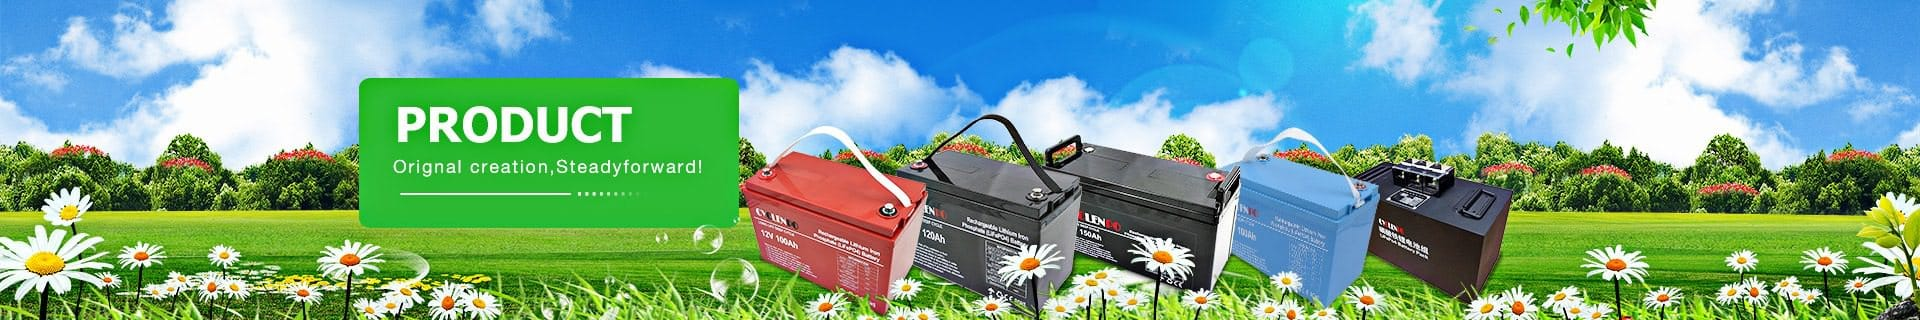 12v 20ah rechargeable battery, 12v 40ah battery, 12 volt 40ah battery, 12v 40ah solar battery